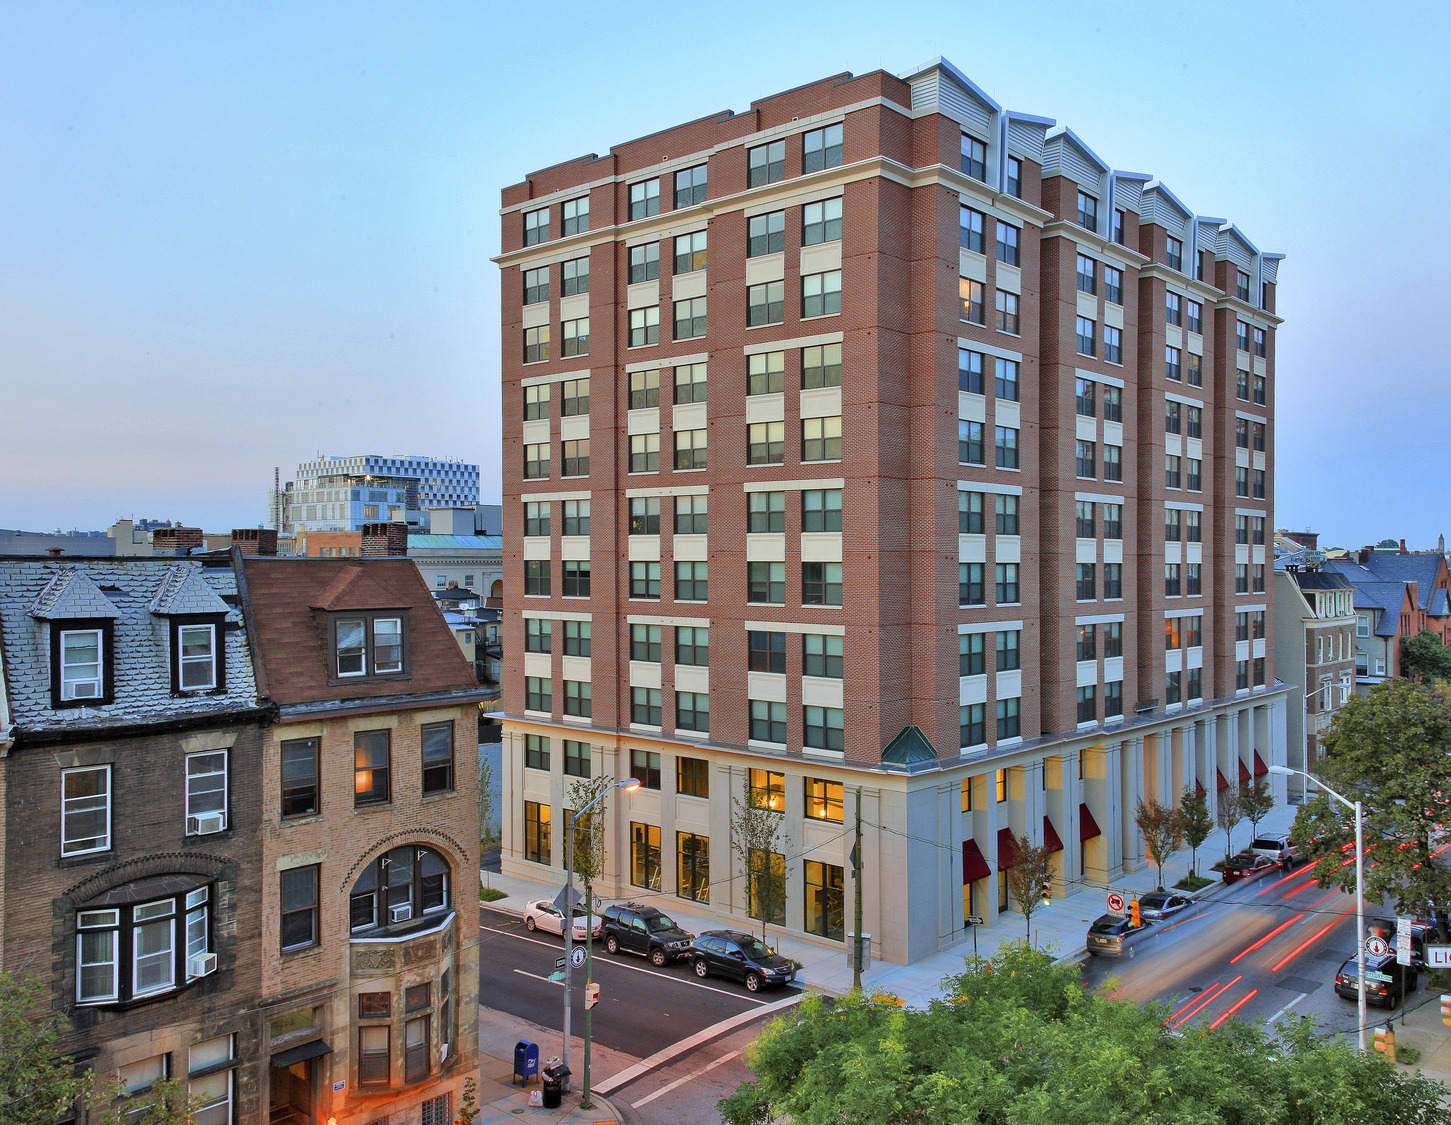 CBG builds Varsity at University of Baltimore, a 11-Story, 323-Bed Student Housing Community with 114 Luxury Apartment Units in Baltimore, MD - Image #1